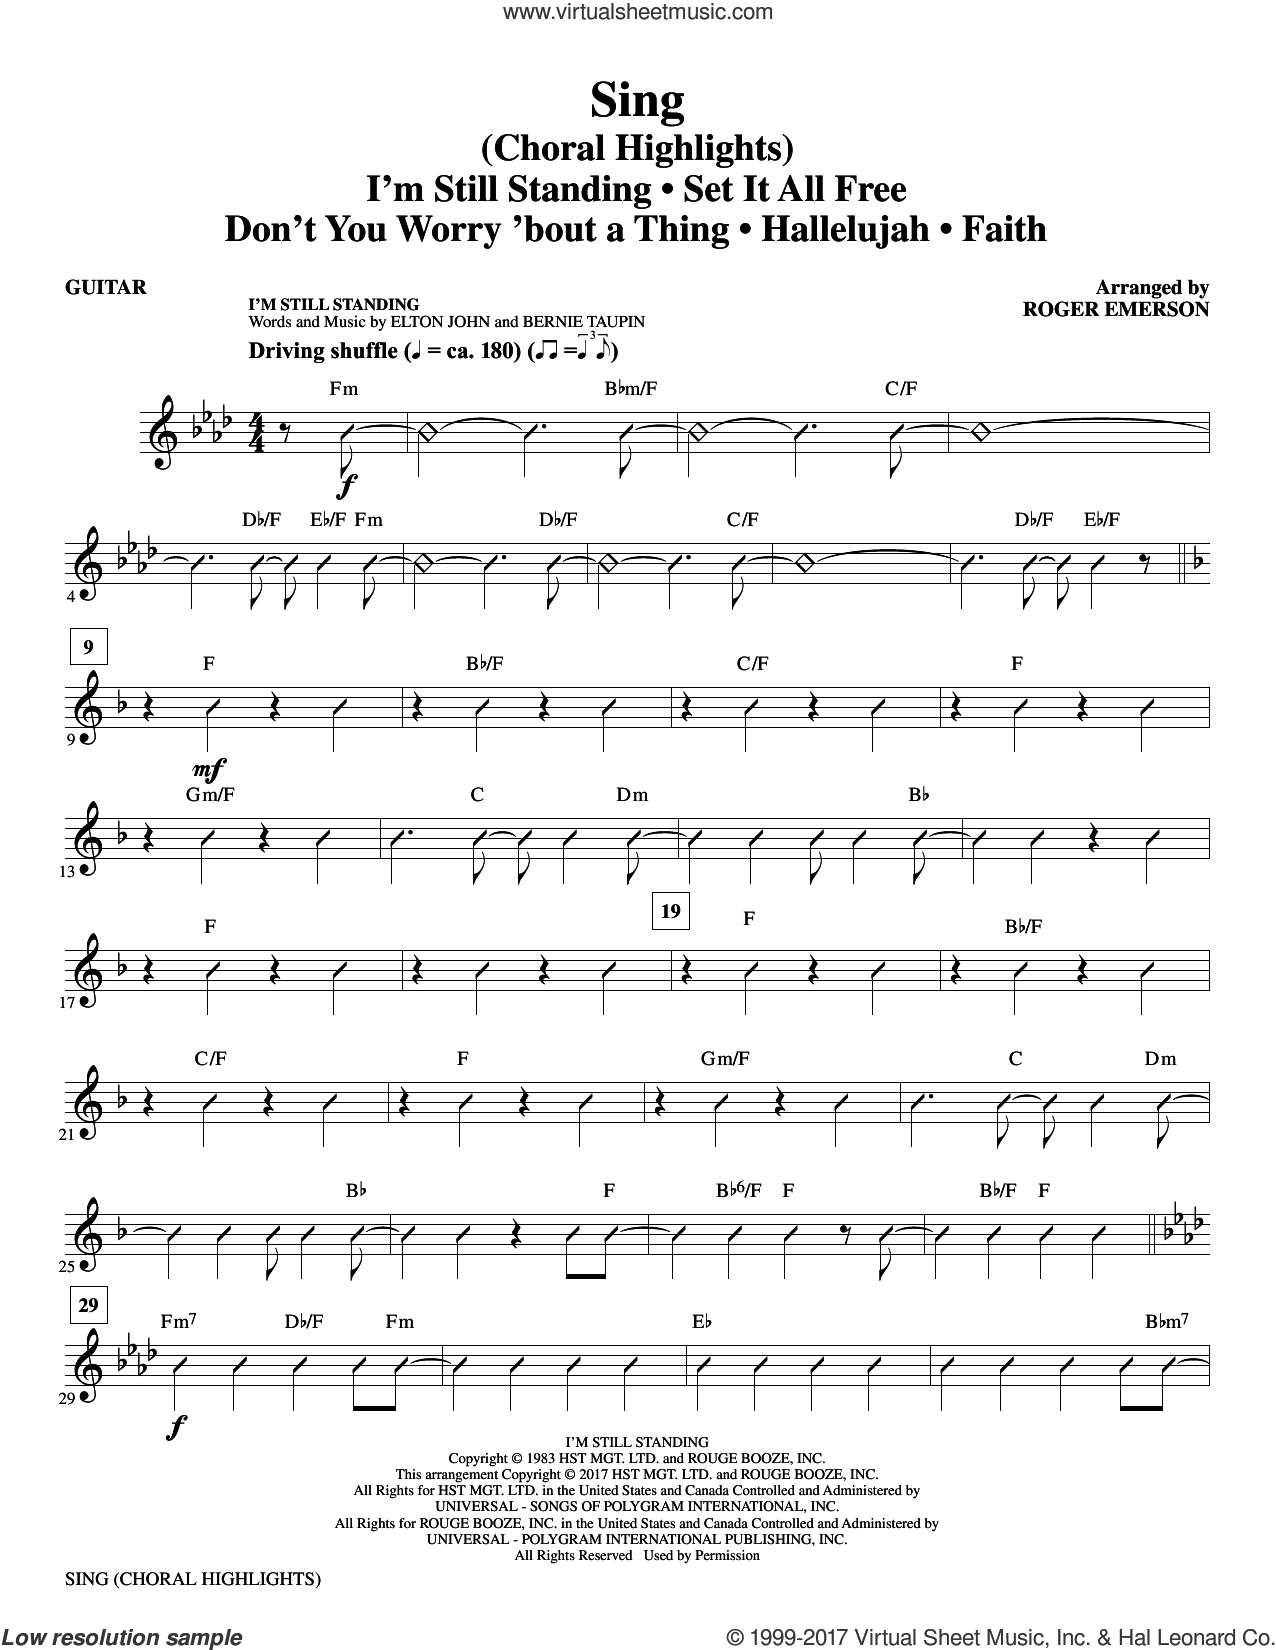 Sing (Choral Highlights) sheet music for orchestra/band (guitar) by Leonard Cohen, Roger Emerson, Justin Timberlake & Matt Morris featuring Charlie Sexton and Lee DeWyze, intermediate skill level